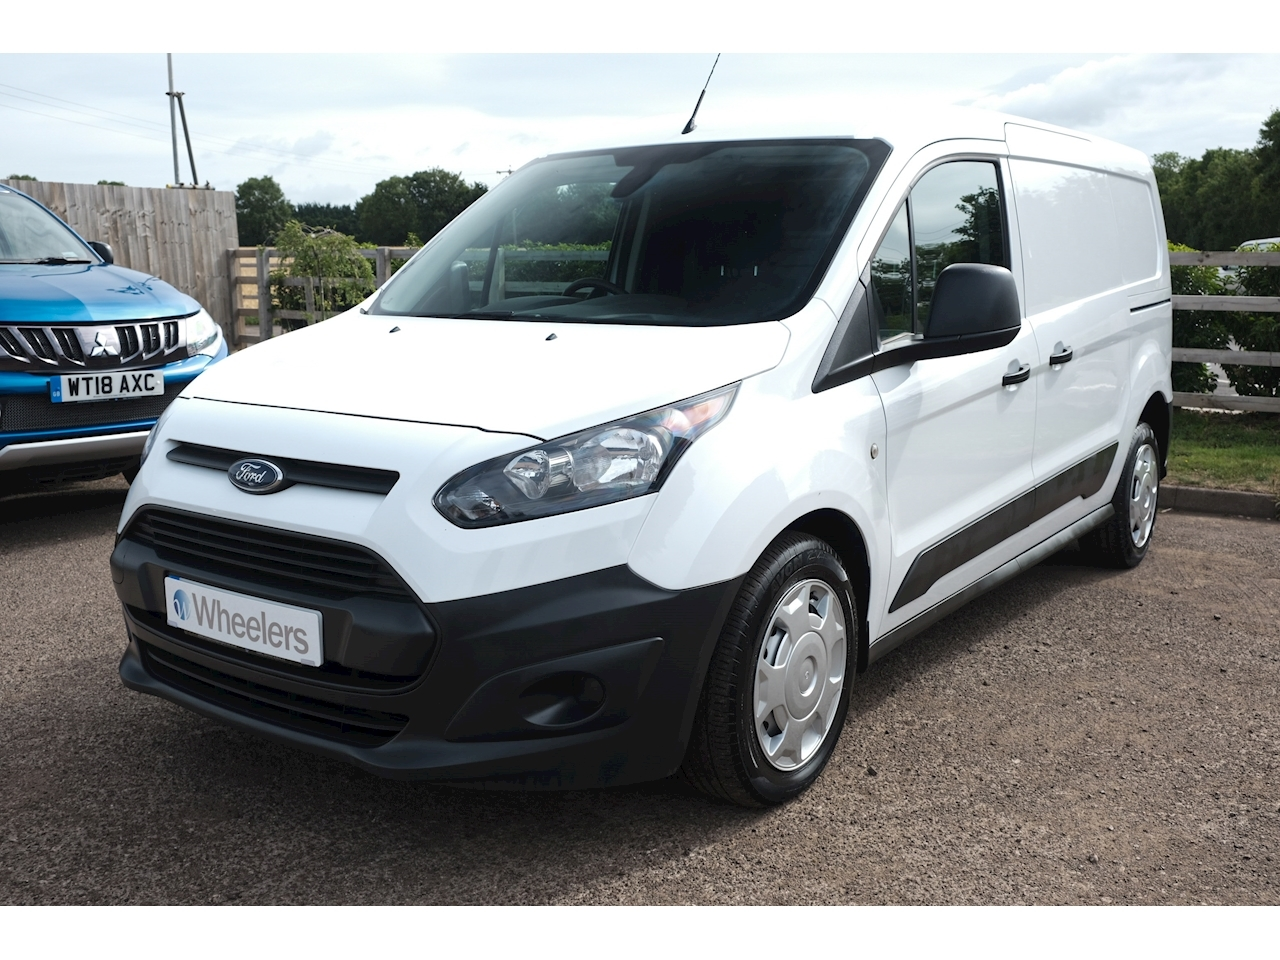 Ford Transit Connect 1.5 TDCi 240 Panel Van 5dr Diesel Manual L2 (124 g/km, 99 bhp) Panel Van 1.5 Manual Diesel